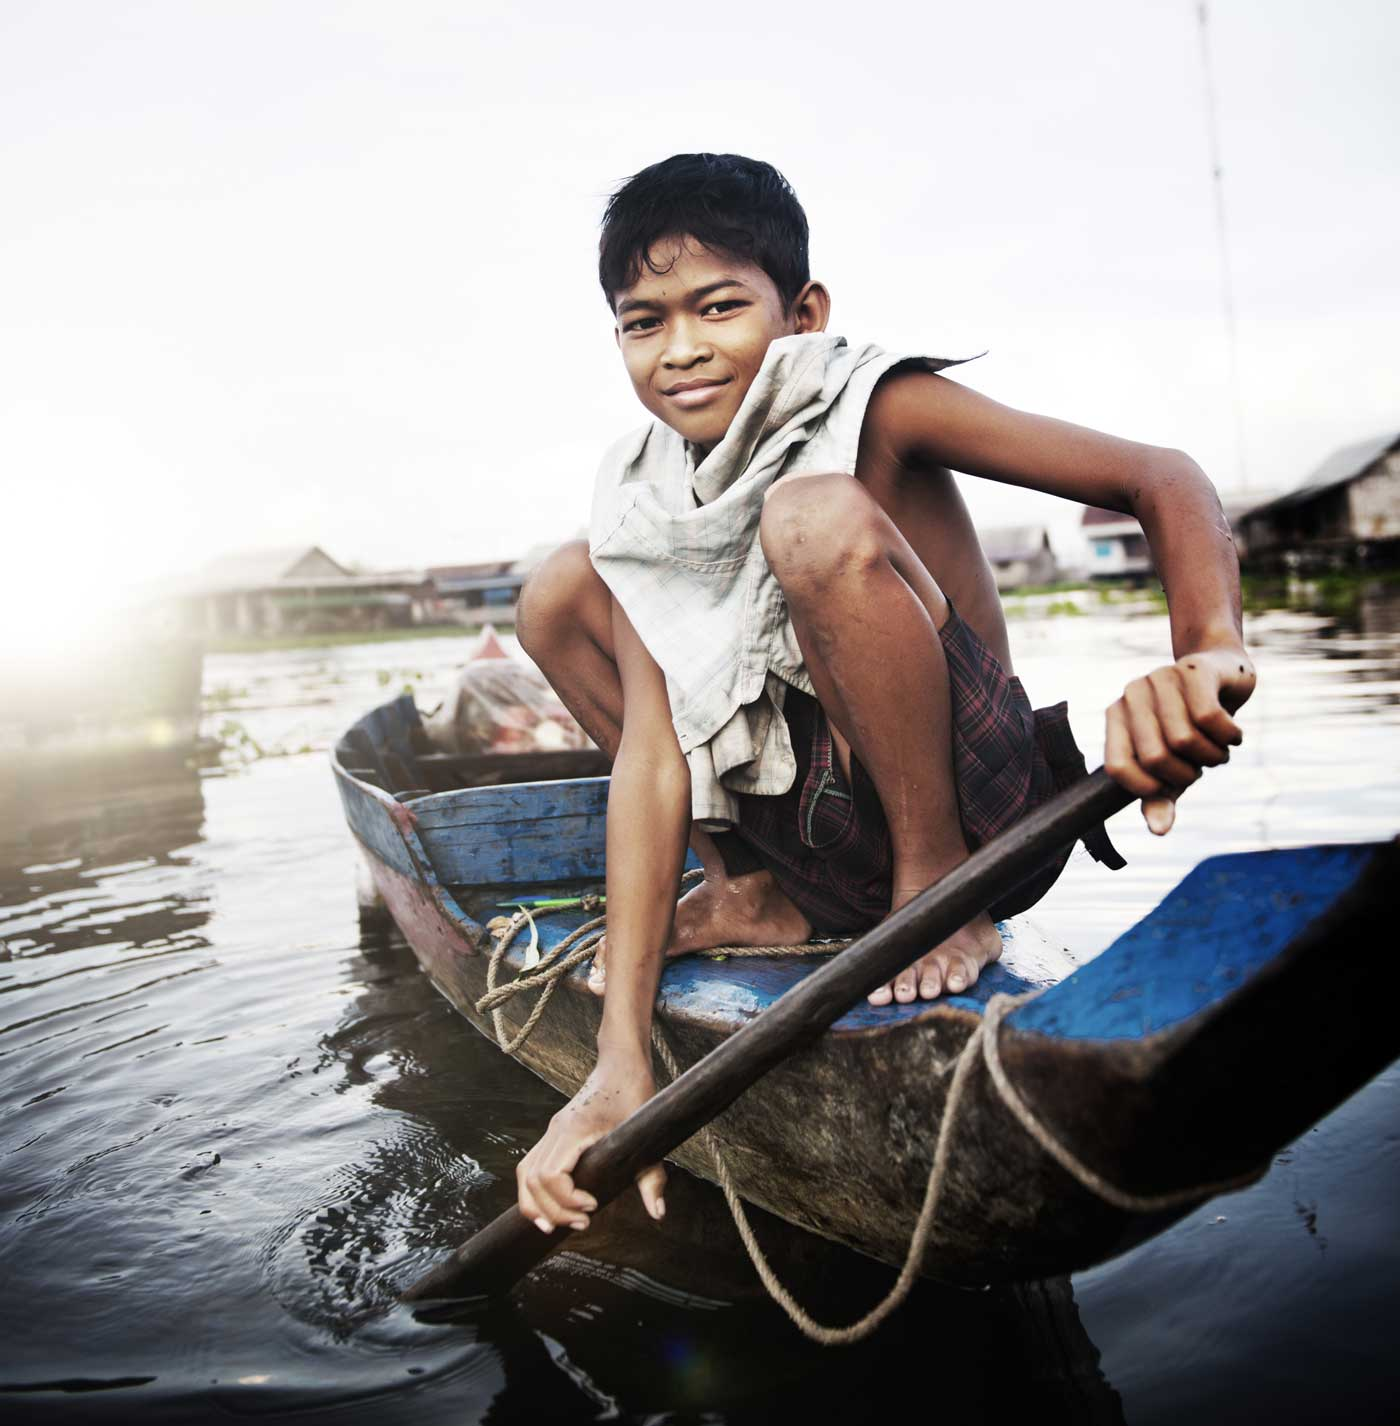 Green Cultural Travel - Cambodia - Siem Reap - Floating Village - Boy on a boat